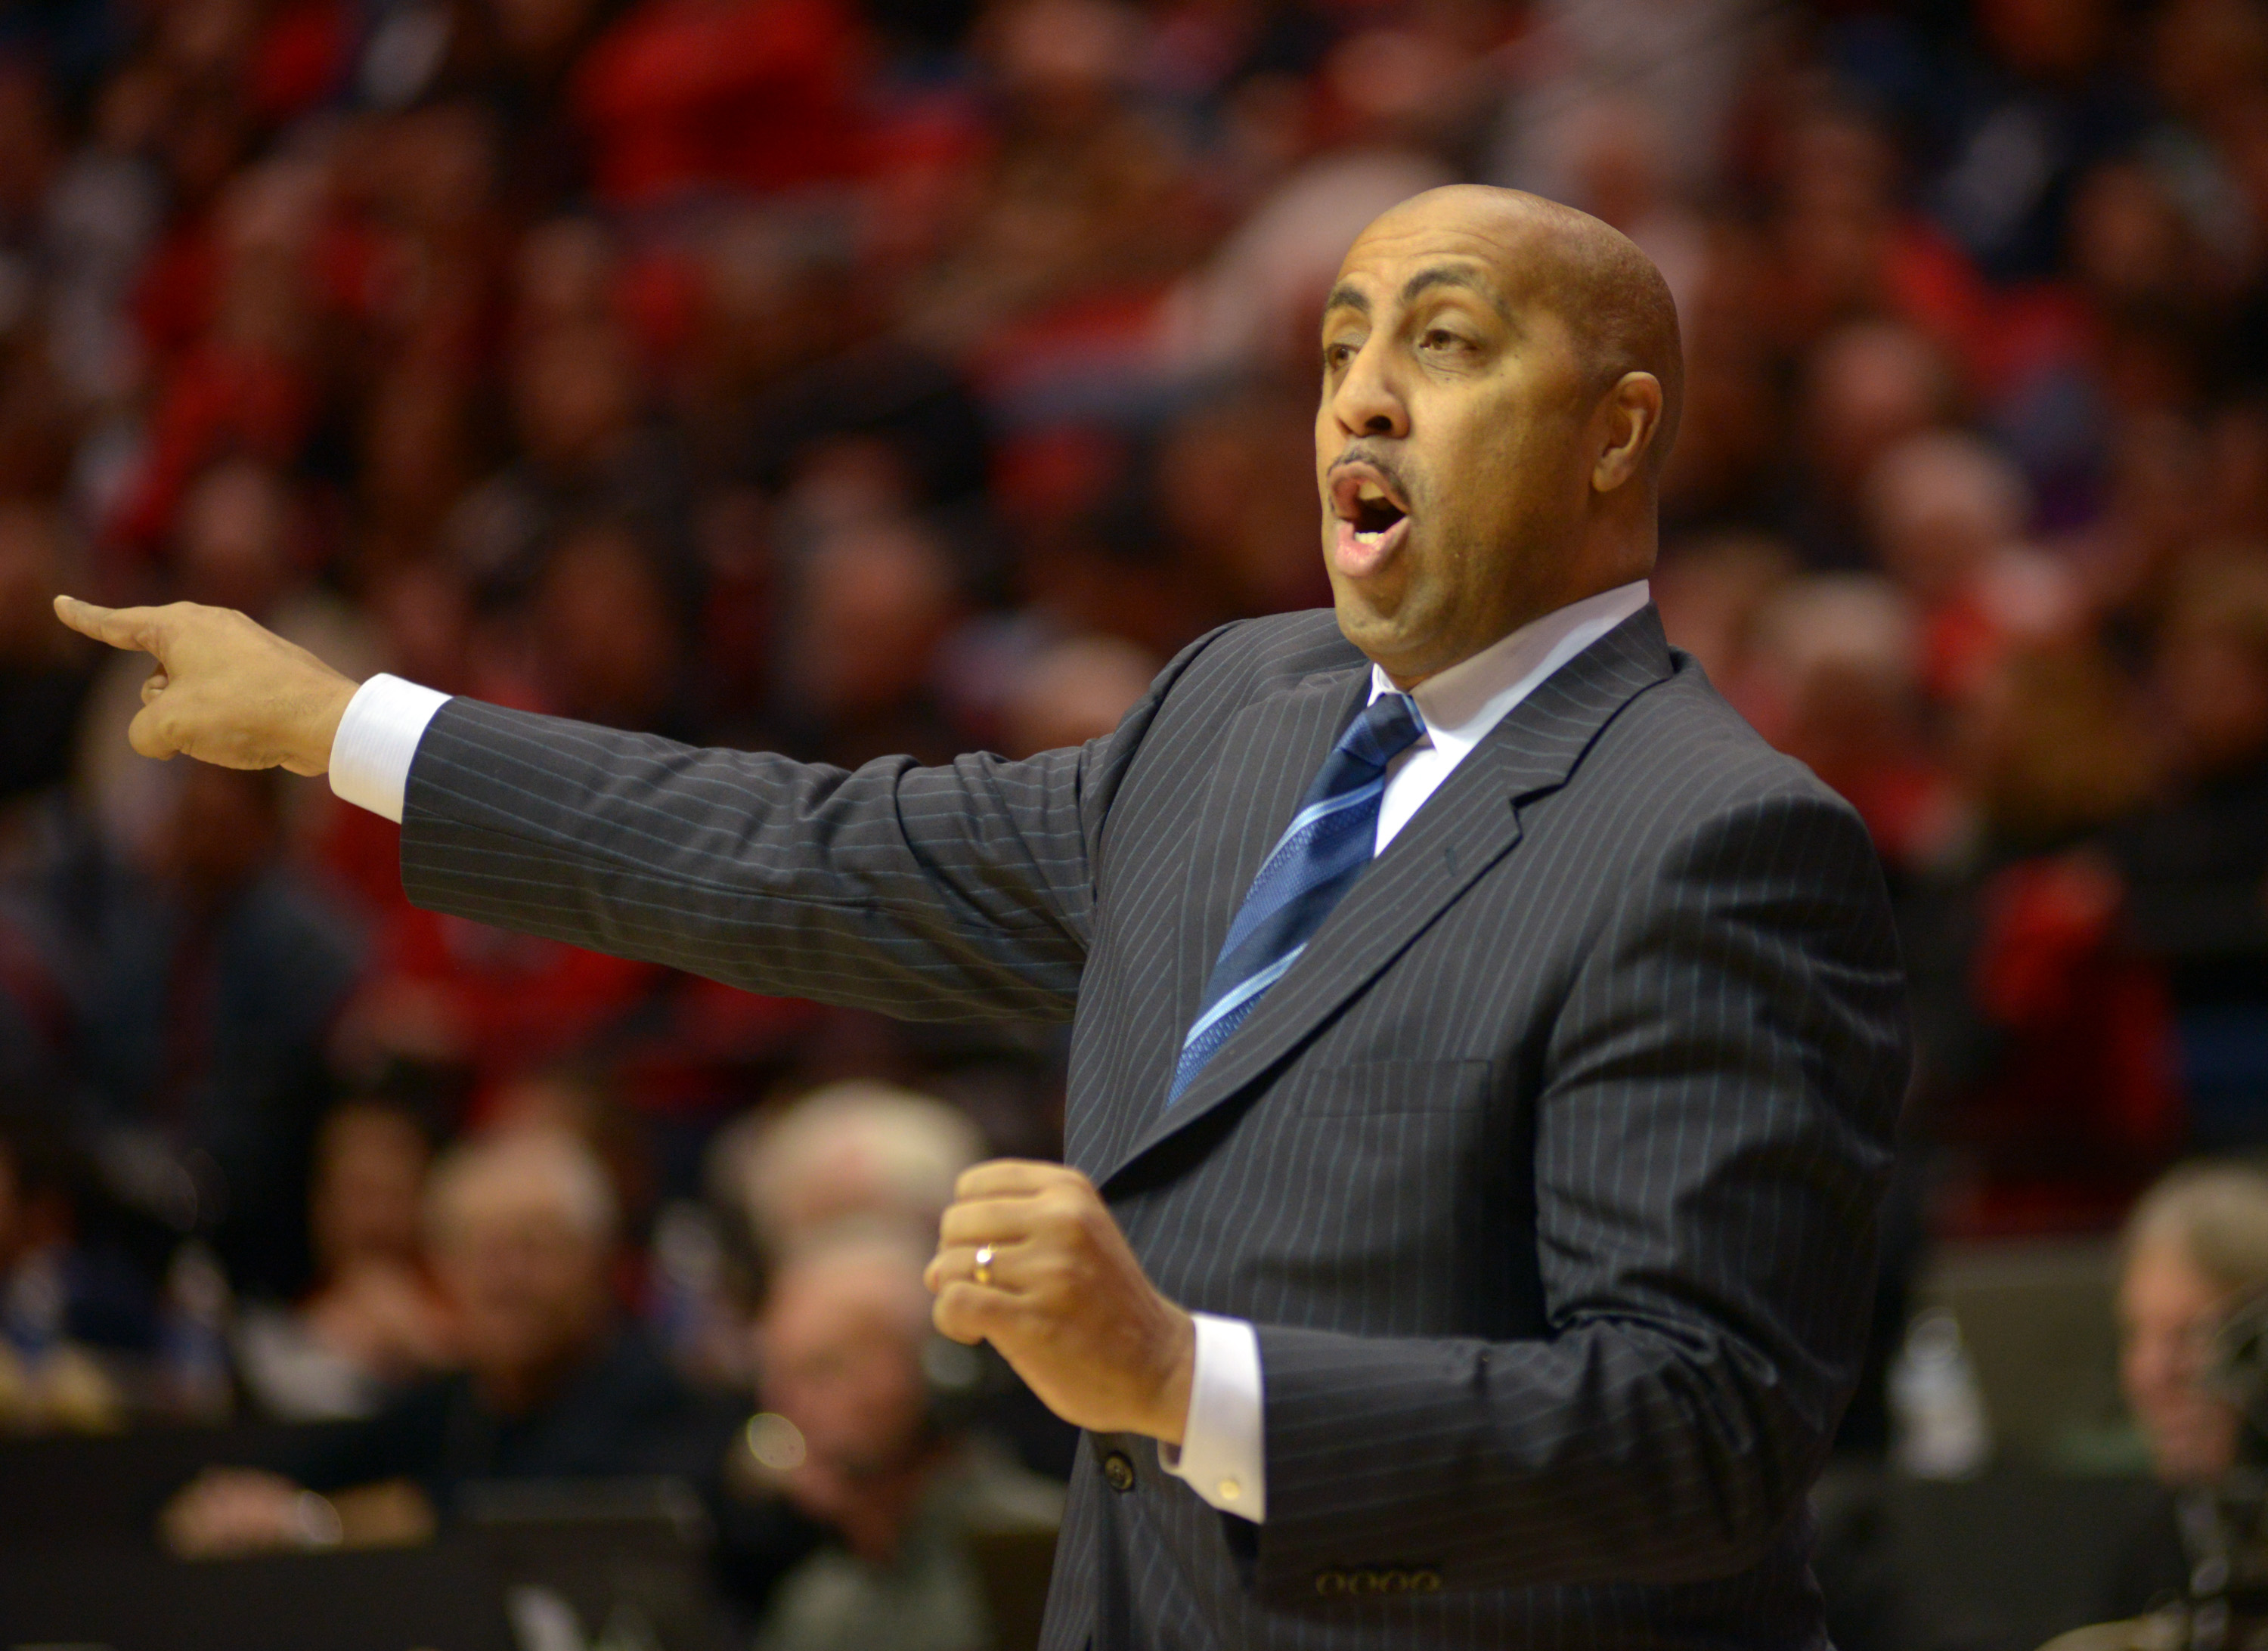 SAN DIEGO, CA - DECEMBER 8: Coach Lorenzo Romar of the Washington Huskies directs his players in the first half of the game against the San Diego State Aztecs at the Viejas Arena on December 8, 2013 in San Diego, California. (Photo by Kent C. Horner/Getty Images)